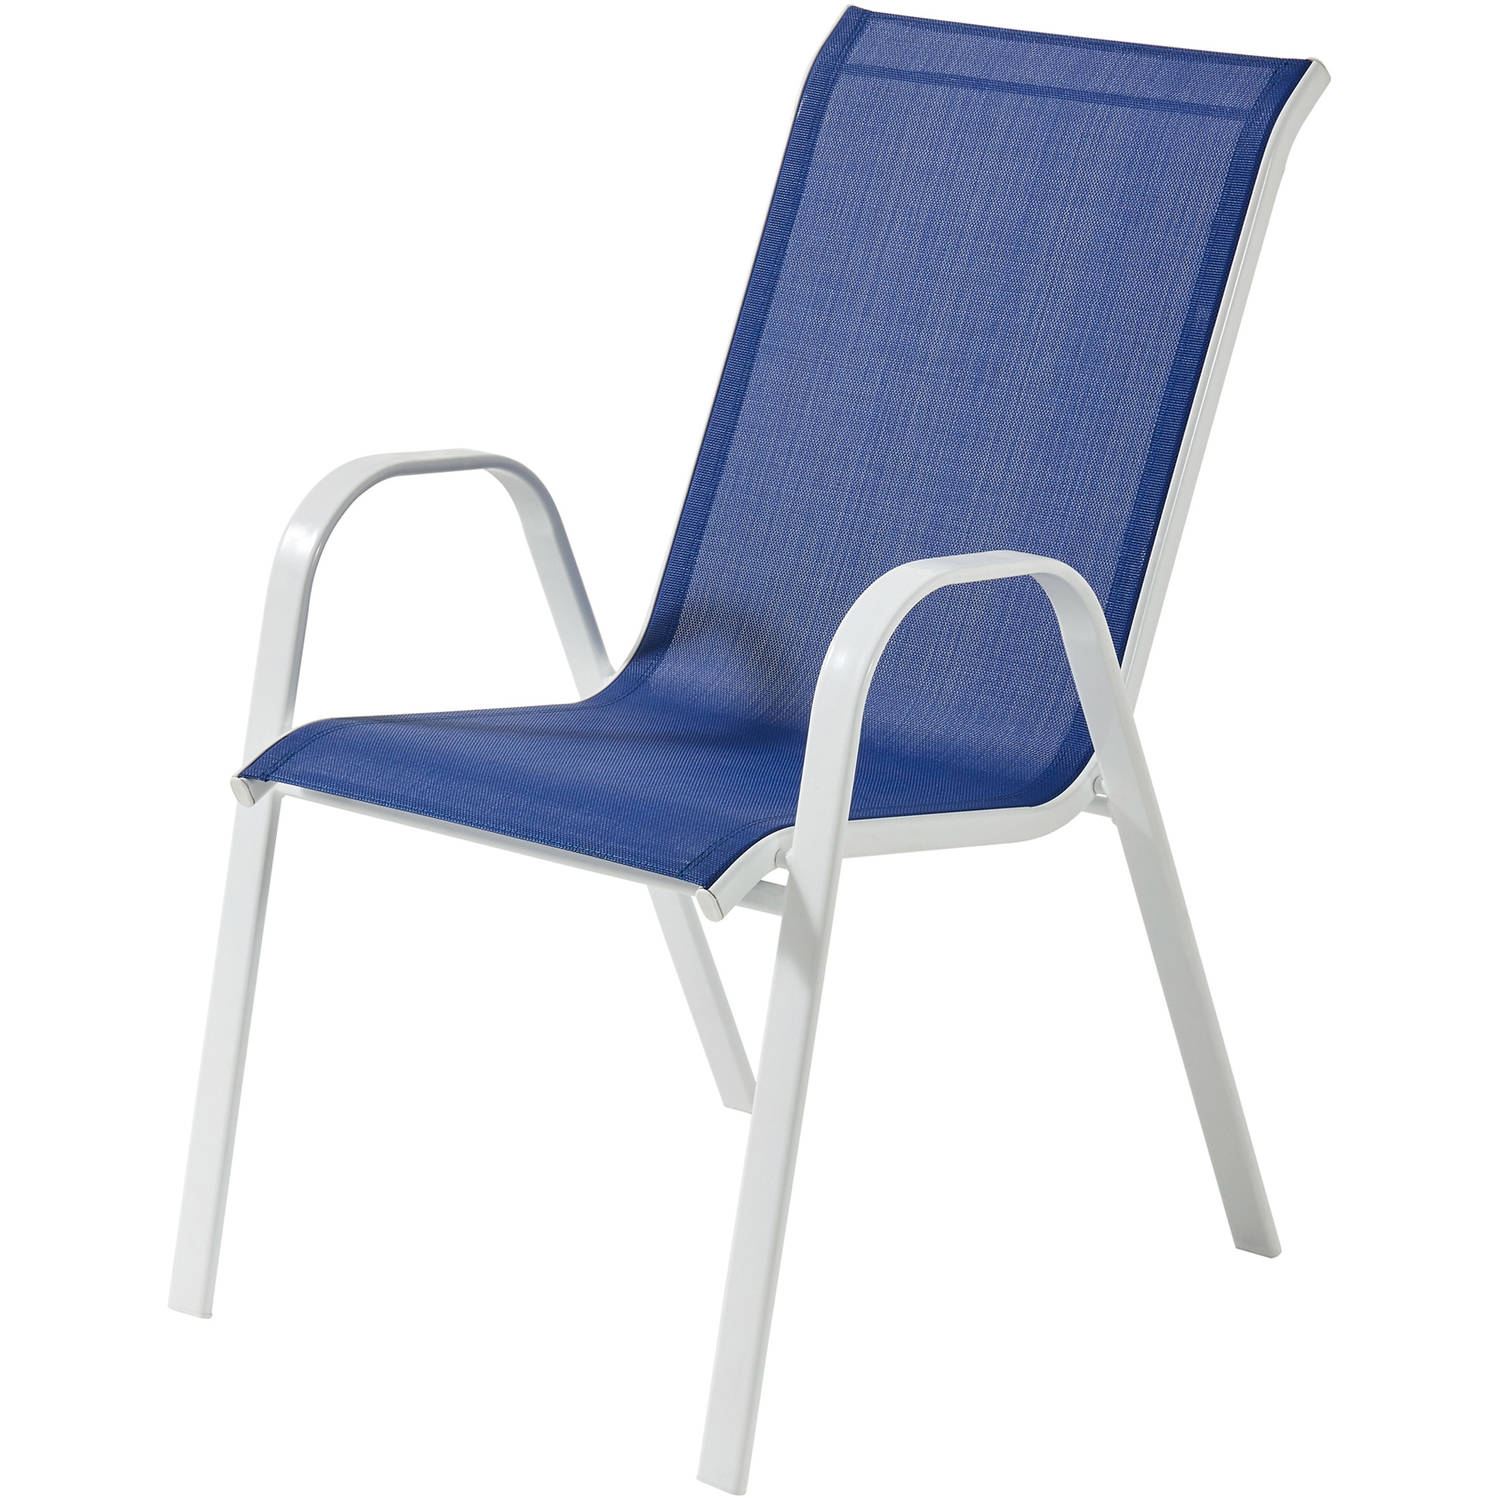 High Quality Mainstays Heritage Park Stacking Sling Chair, Royal Blue